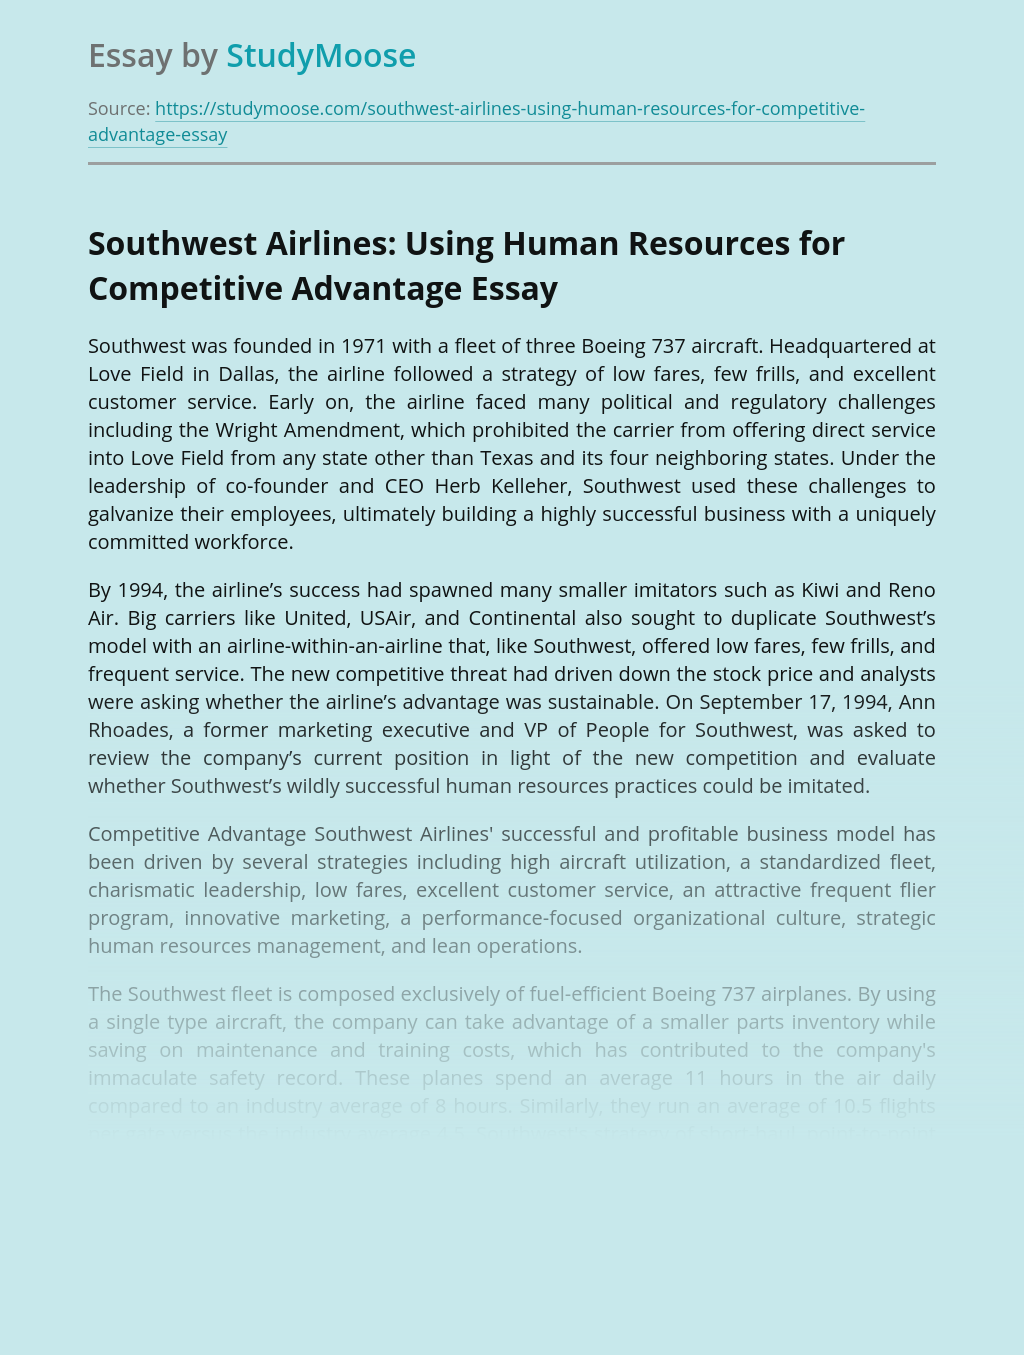 Southwest Airlines: Using Human Resources for Competitive Advantage